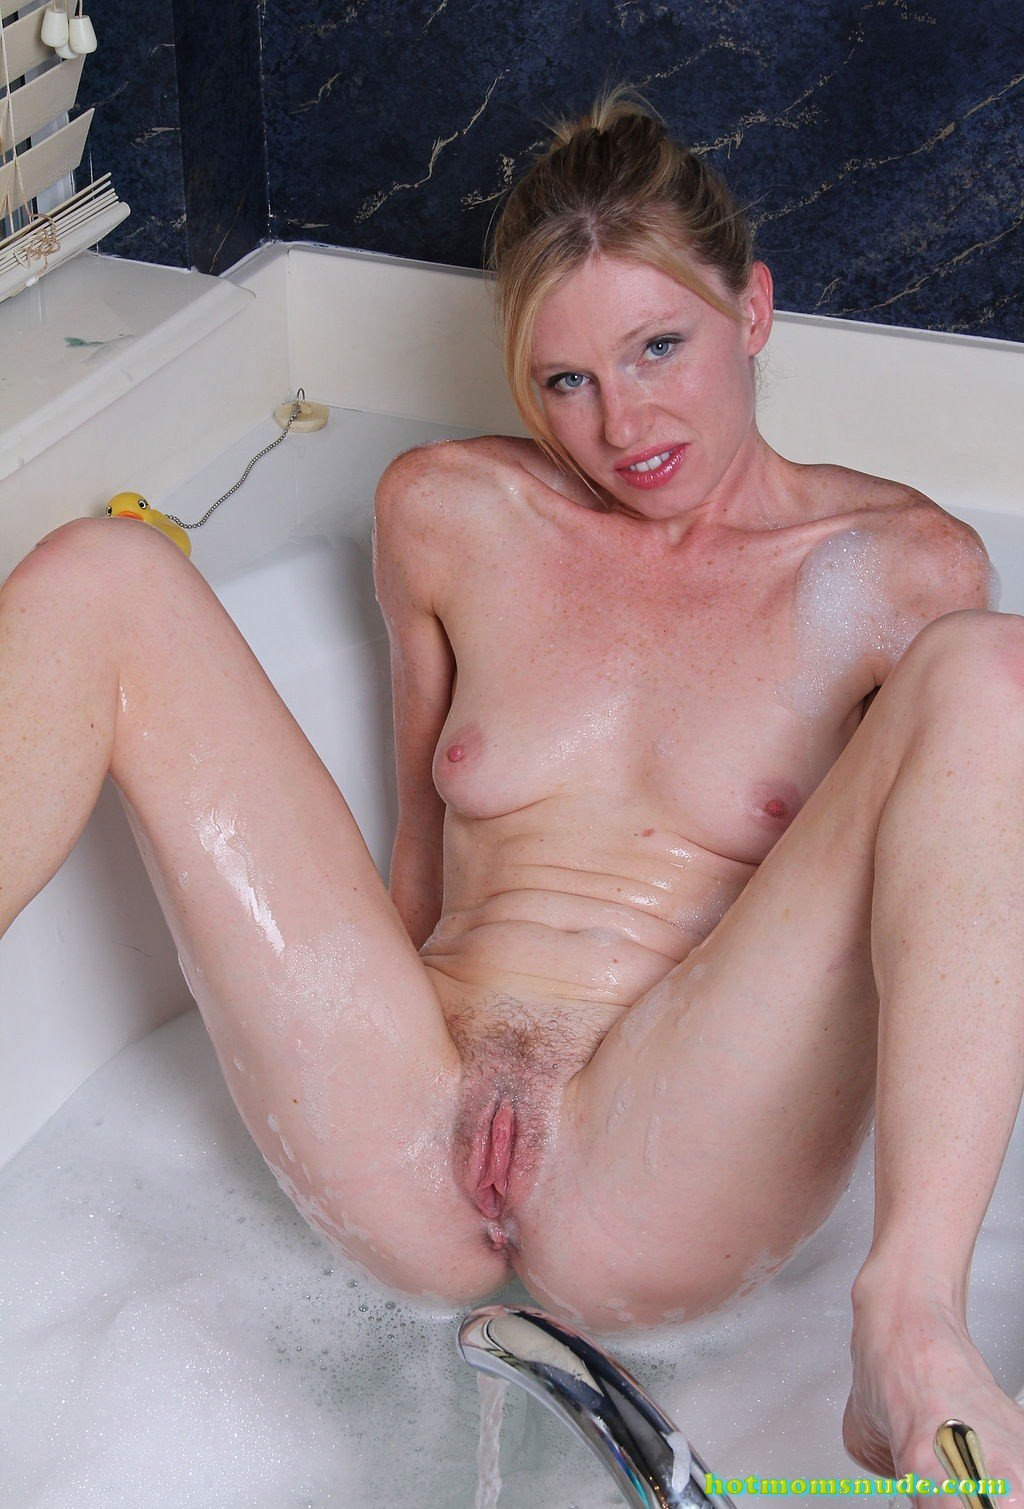 Tommi,Lacey Nude Pics And Biography - Hot Moms Nude-7347